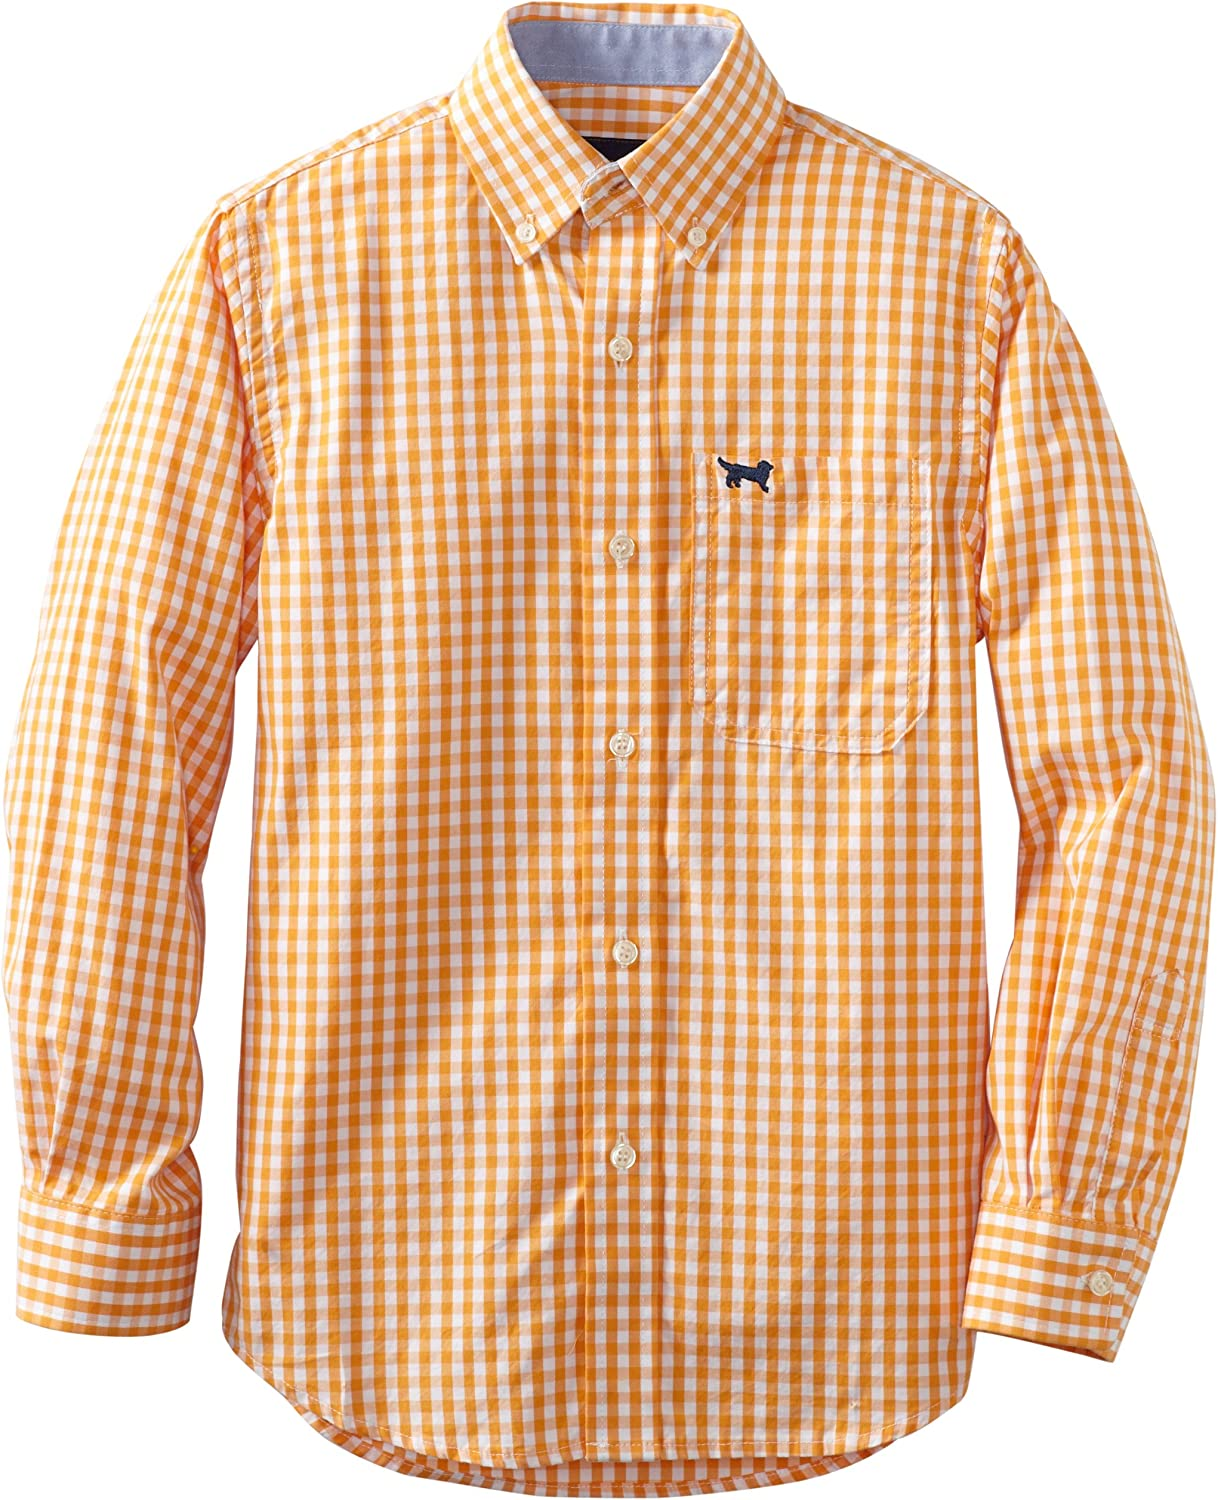 Wes and Willy Big Boys' Long Sleeve Small Gingham Dress Shirt